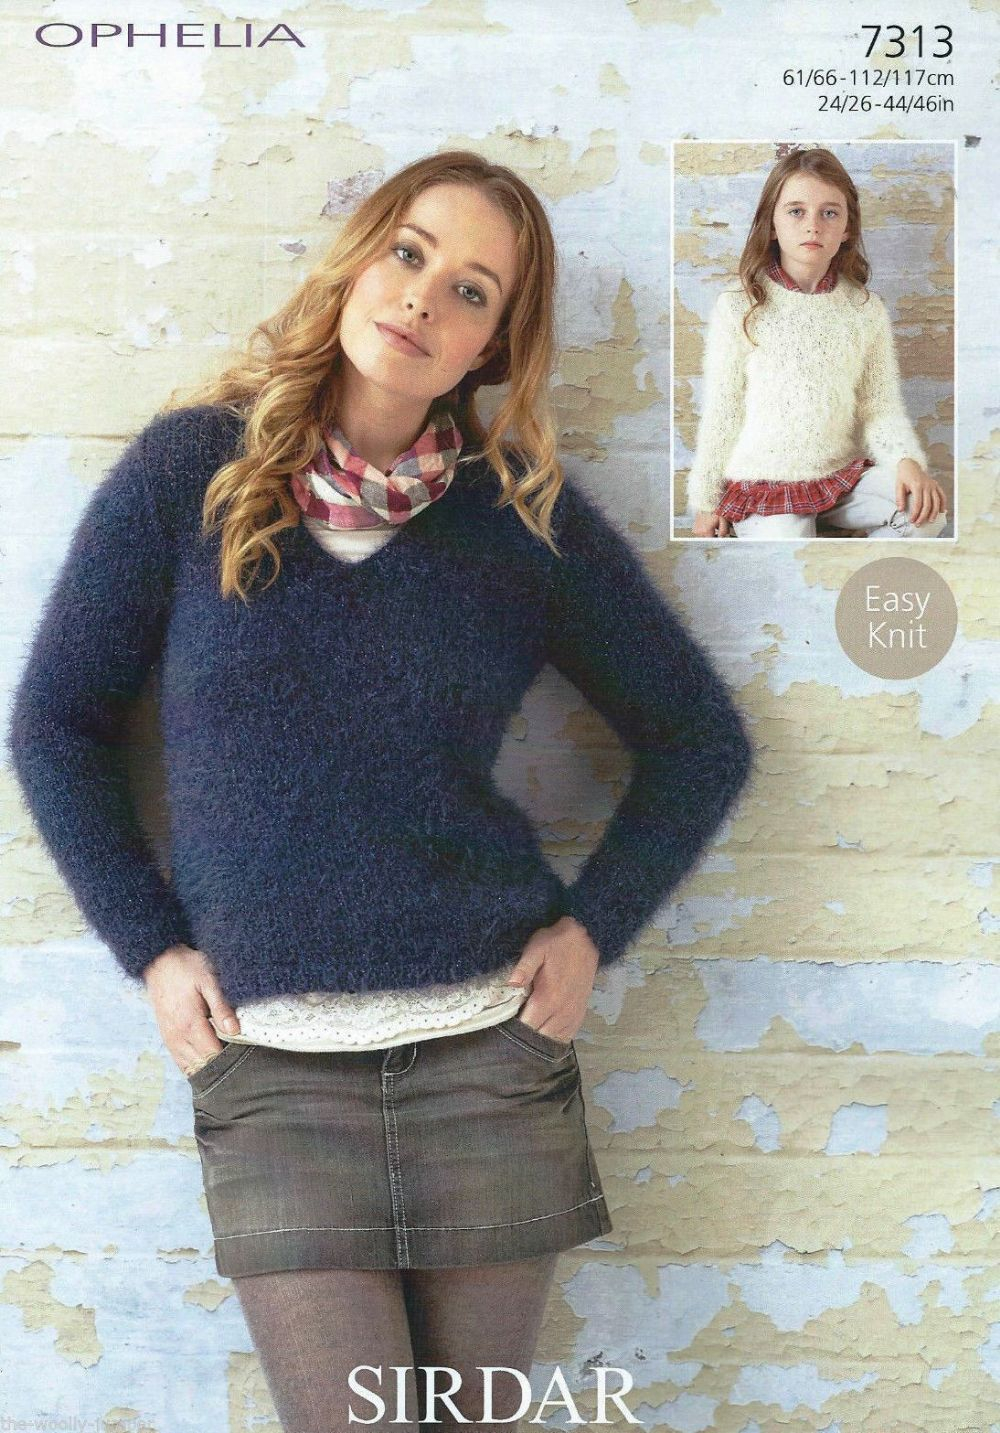 Knit Sweaters Patterns 7313 Sirdar Ophelia Chunky Easy Knit Sweater Knitting Pattern To Fit 24 To 46